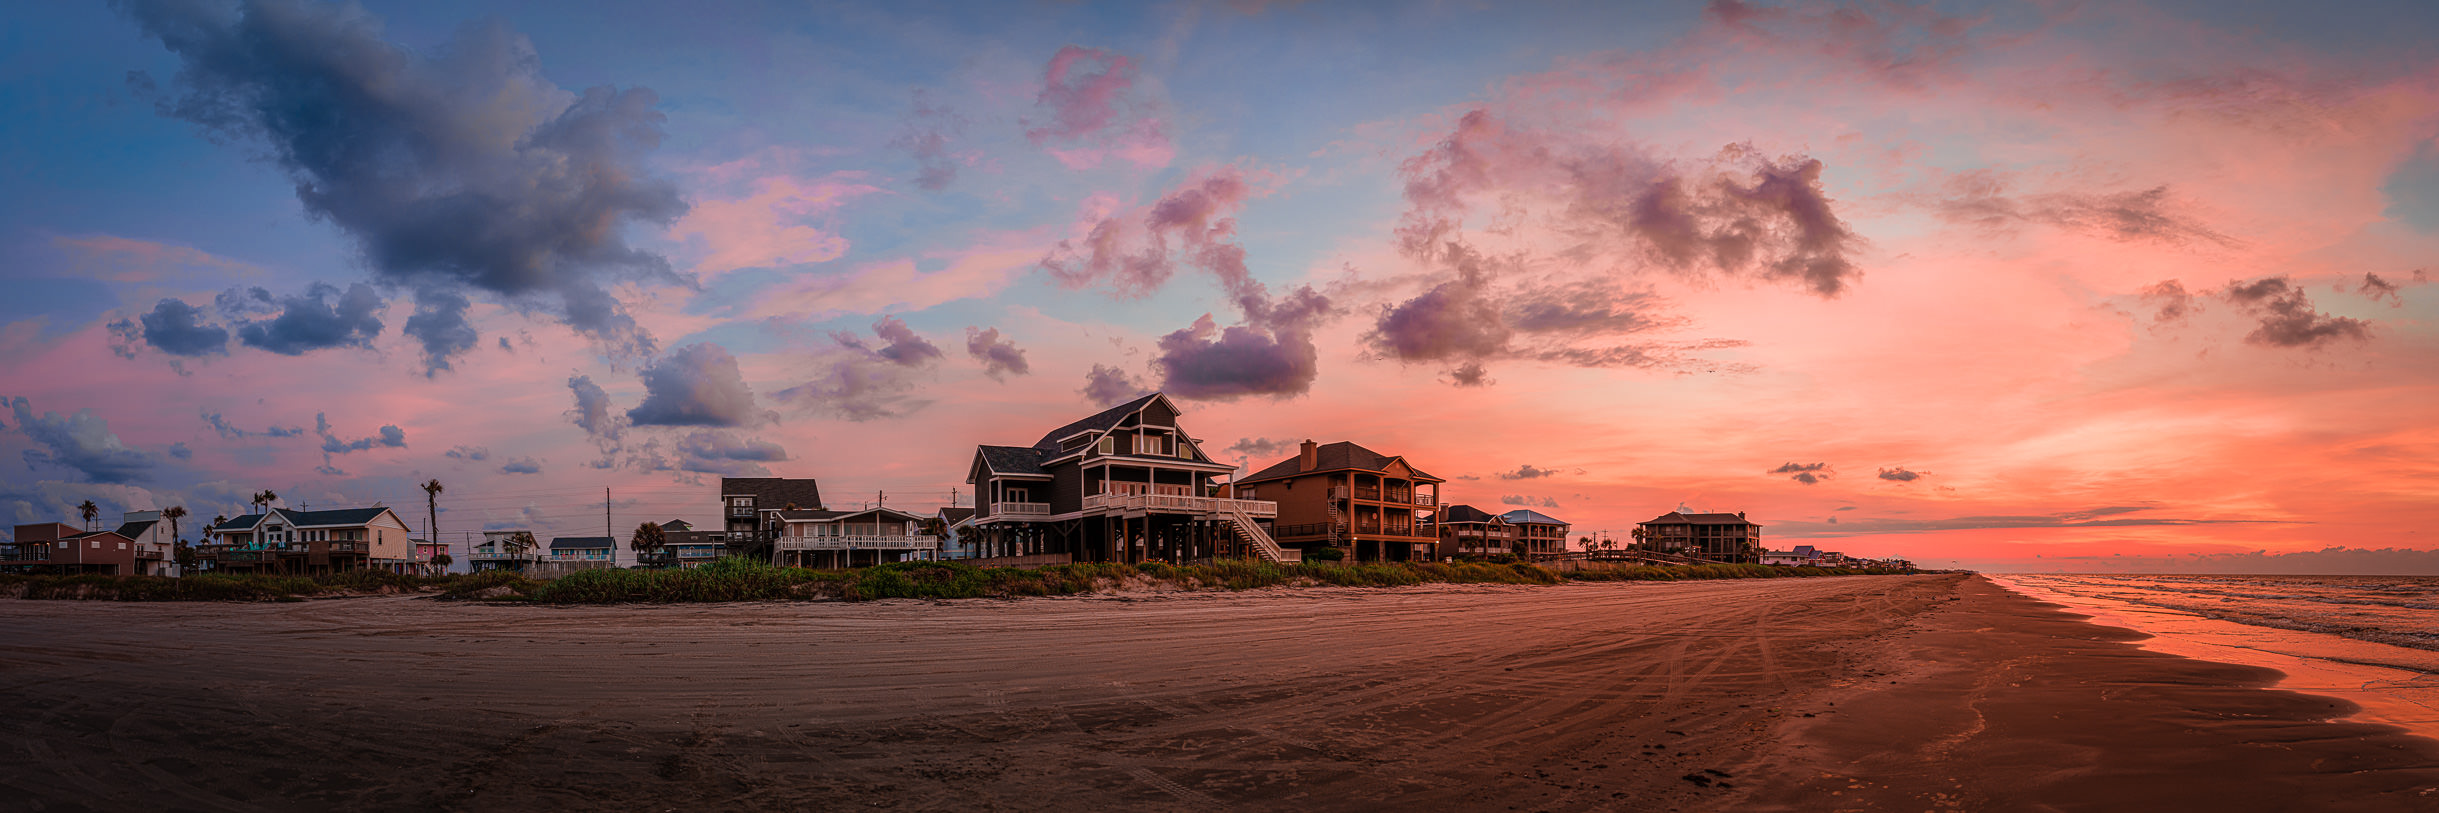 The sun rises on houses along the Galveston, Texas, beach.